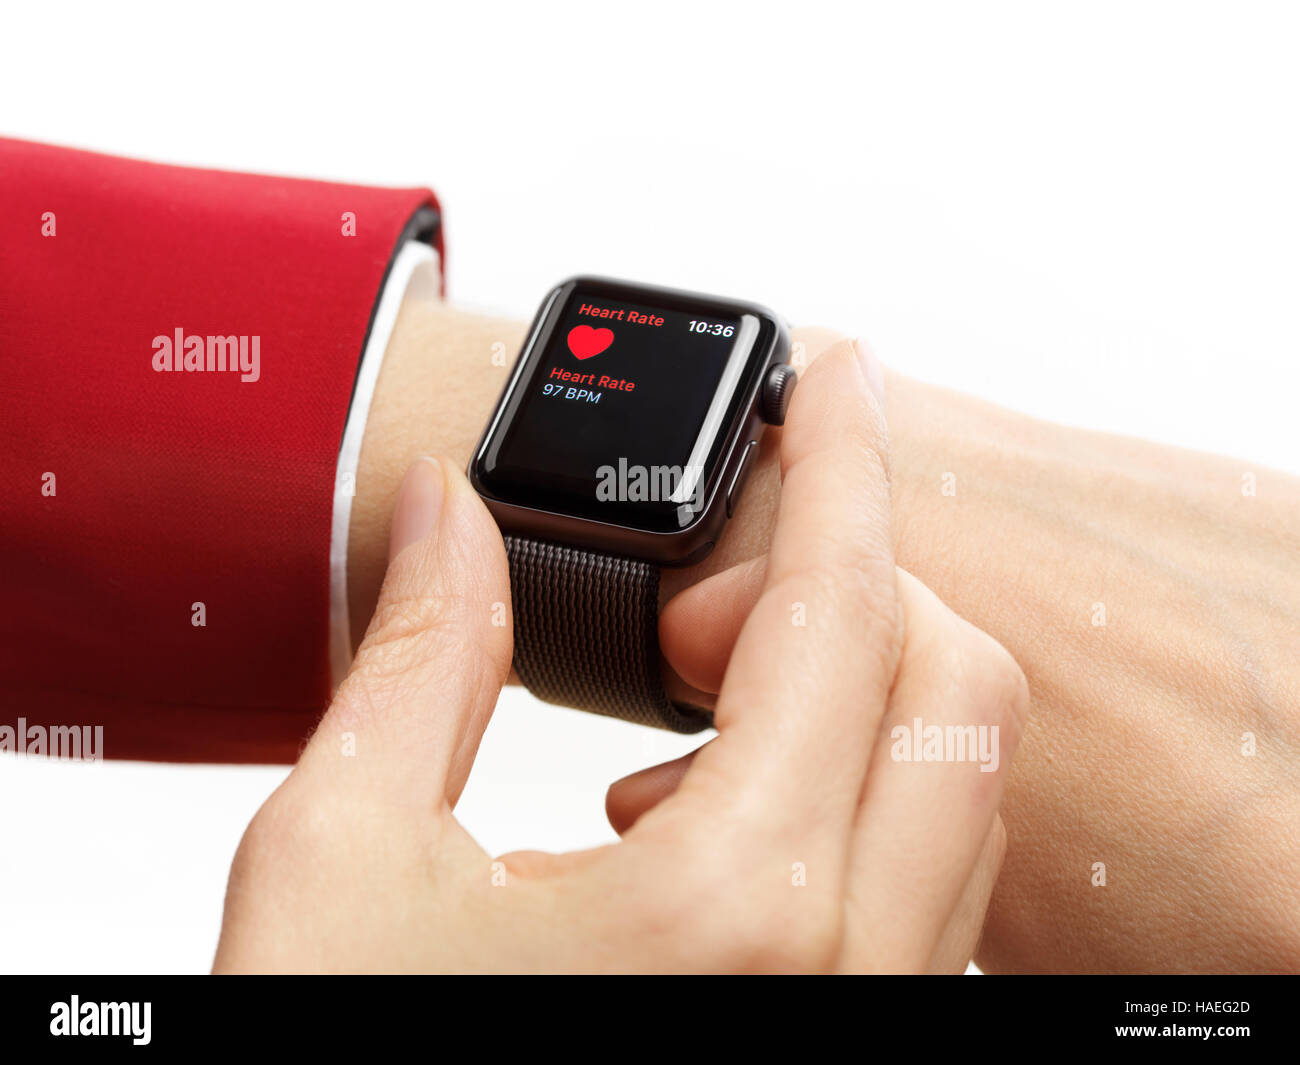 Woman hand with Apple Watch smartwatch on her wrist measuring her heart rate isolated on white background Stock Photo